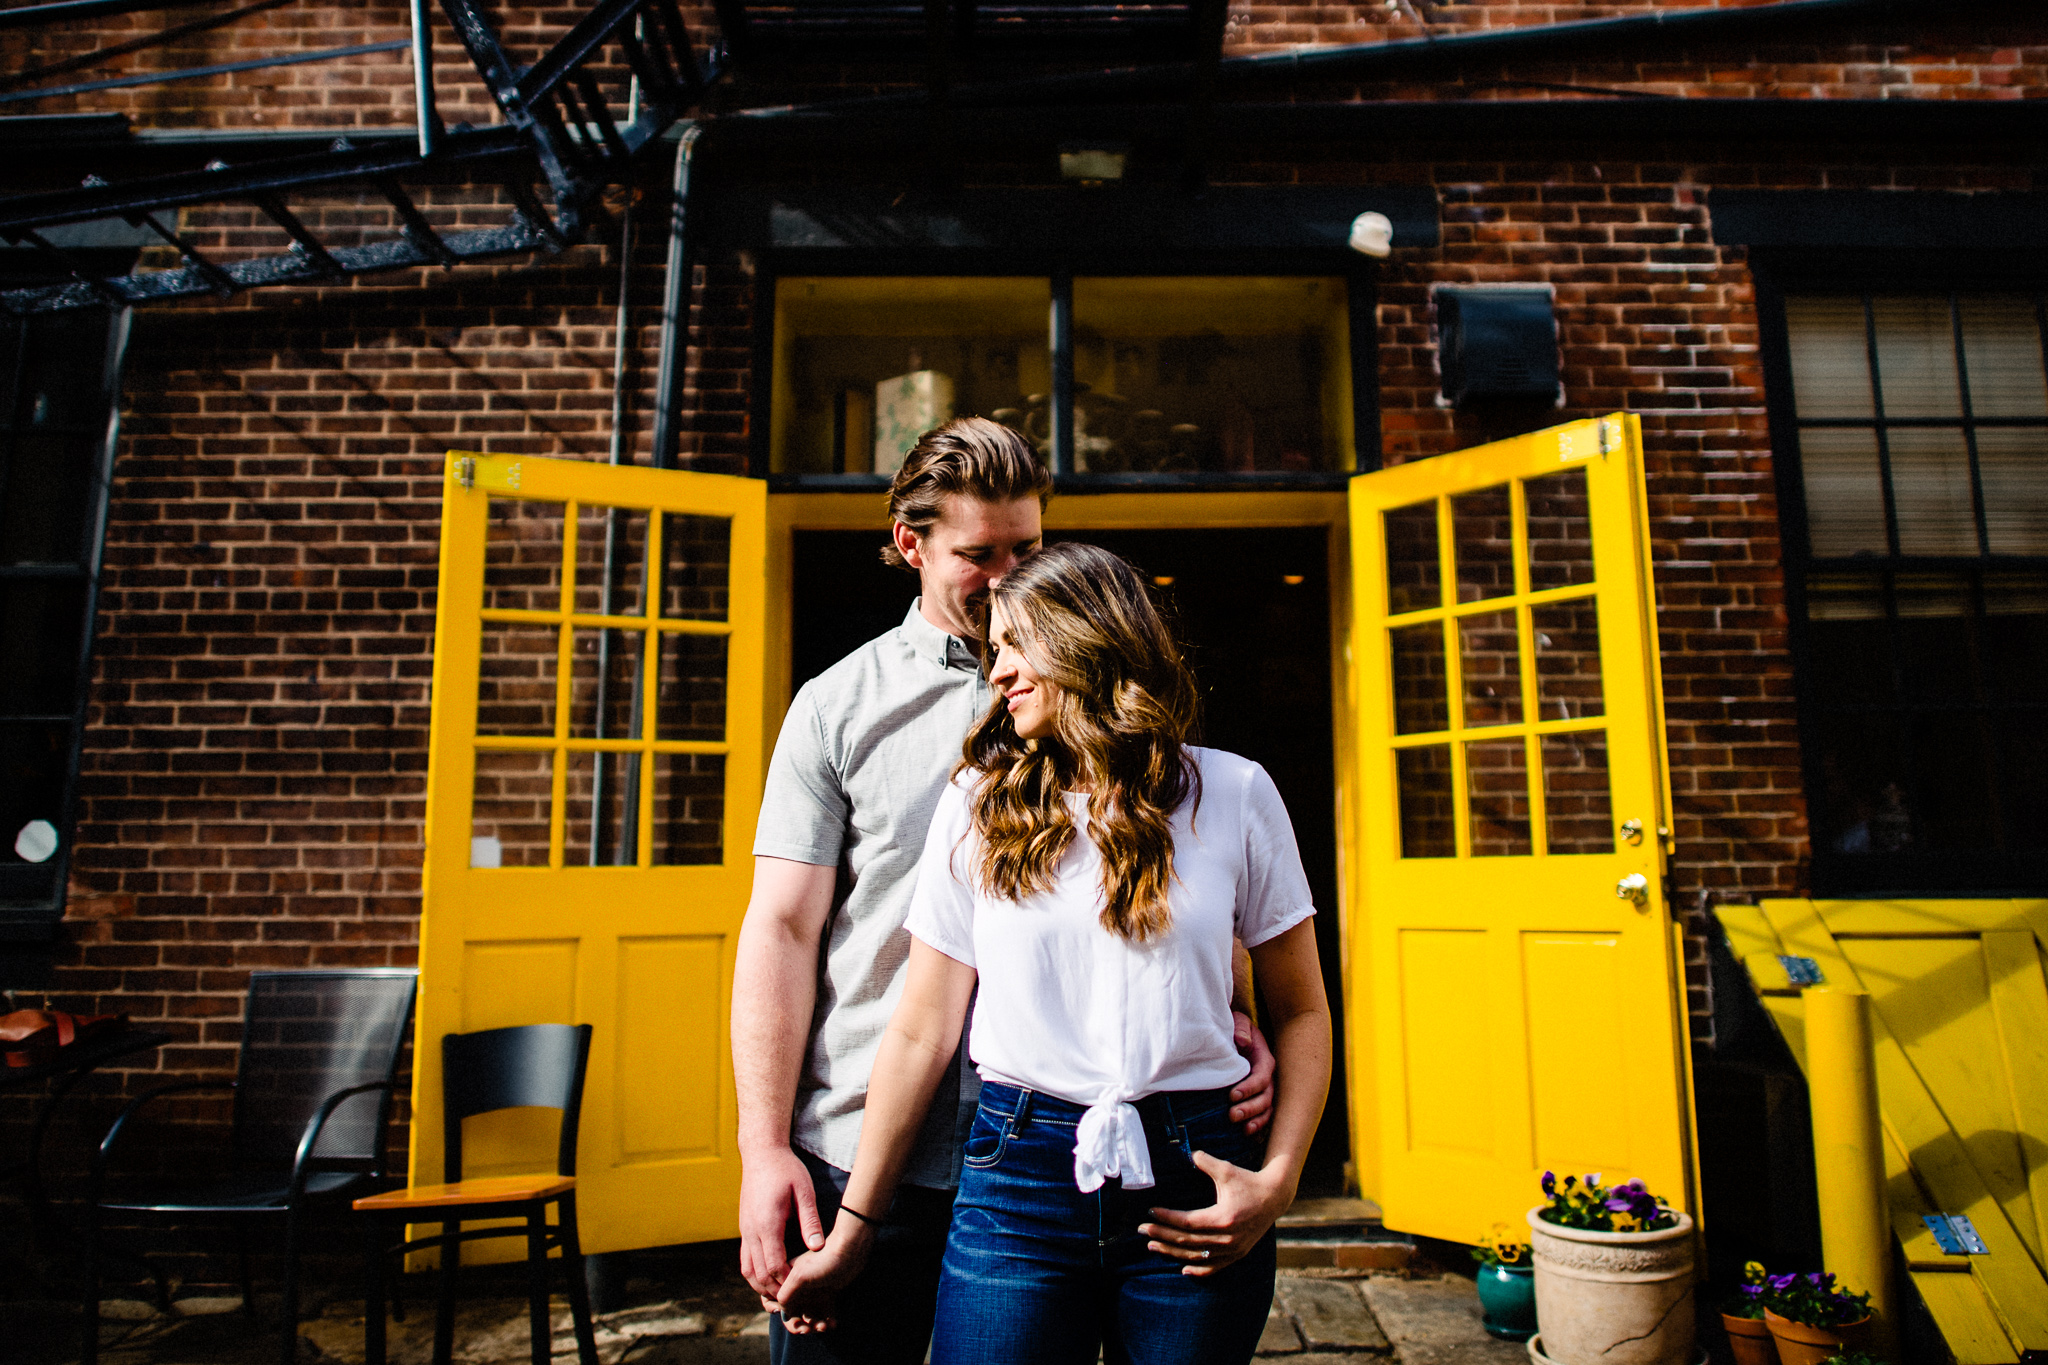 Philadelphia Old City Broad Street Engagement Photography-2019 -04-22-16-39-852_6988-Edit.jpg